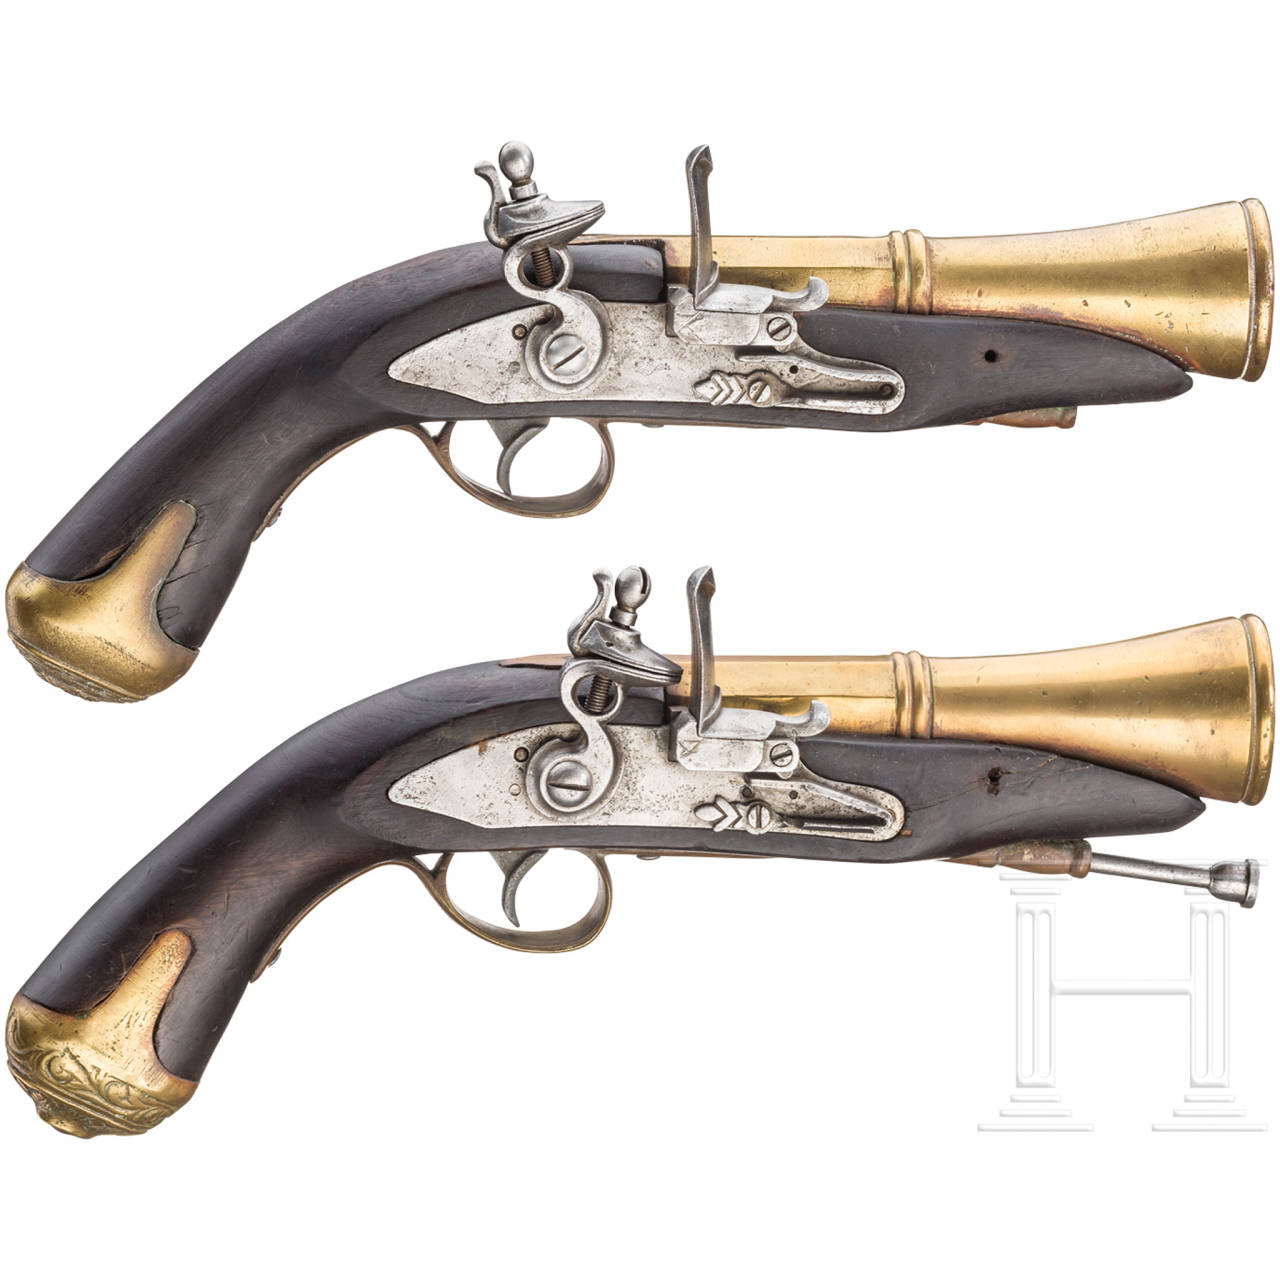 A pair of Spanish flintlock blunderbuss pistols, 20th century